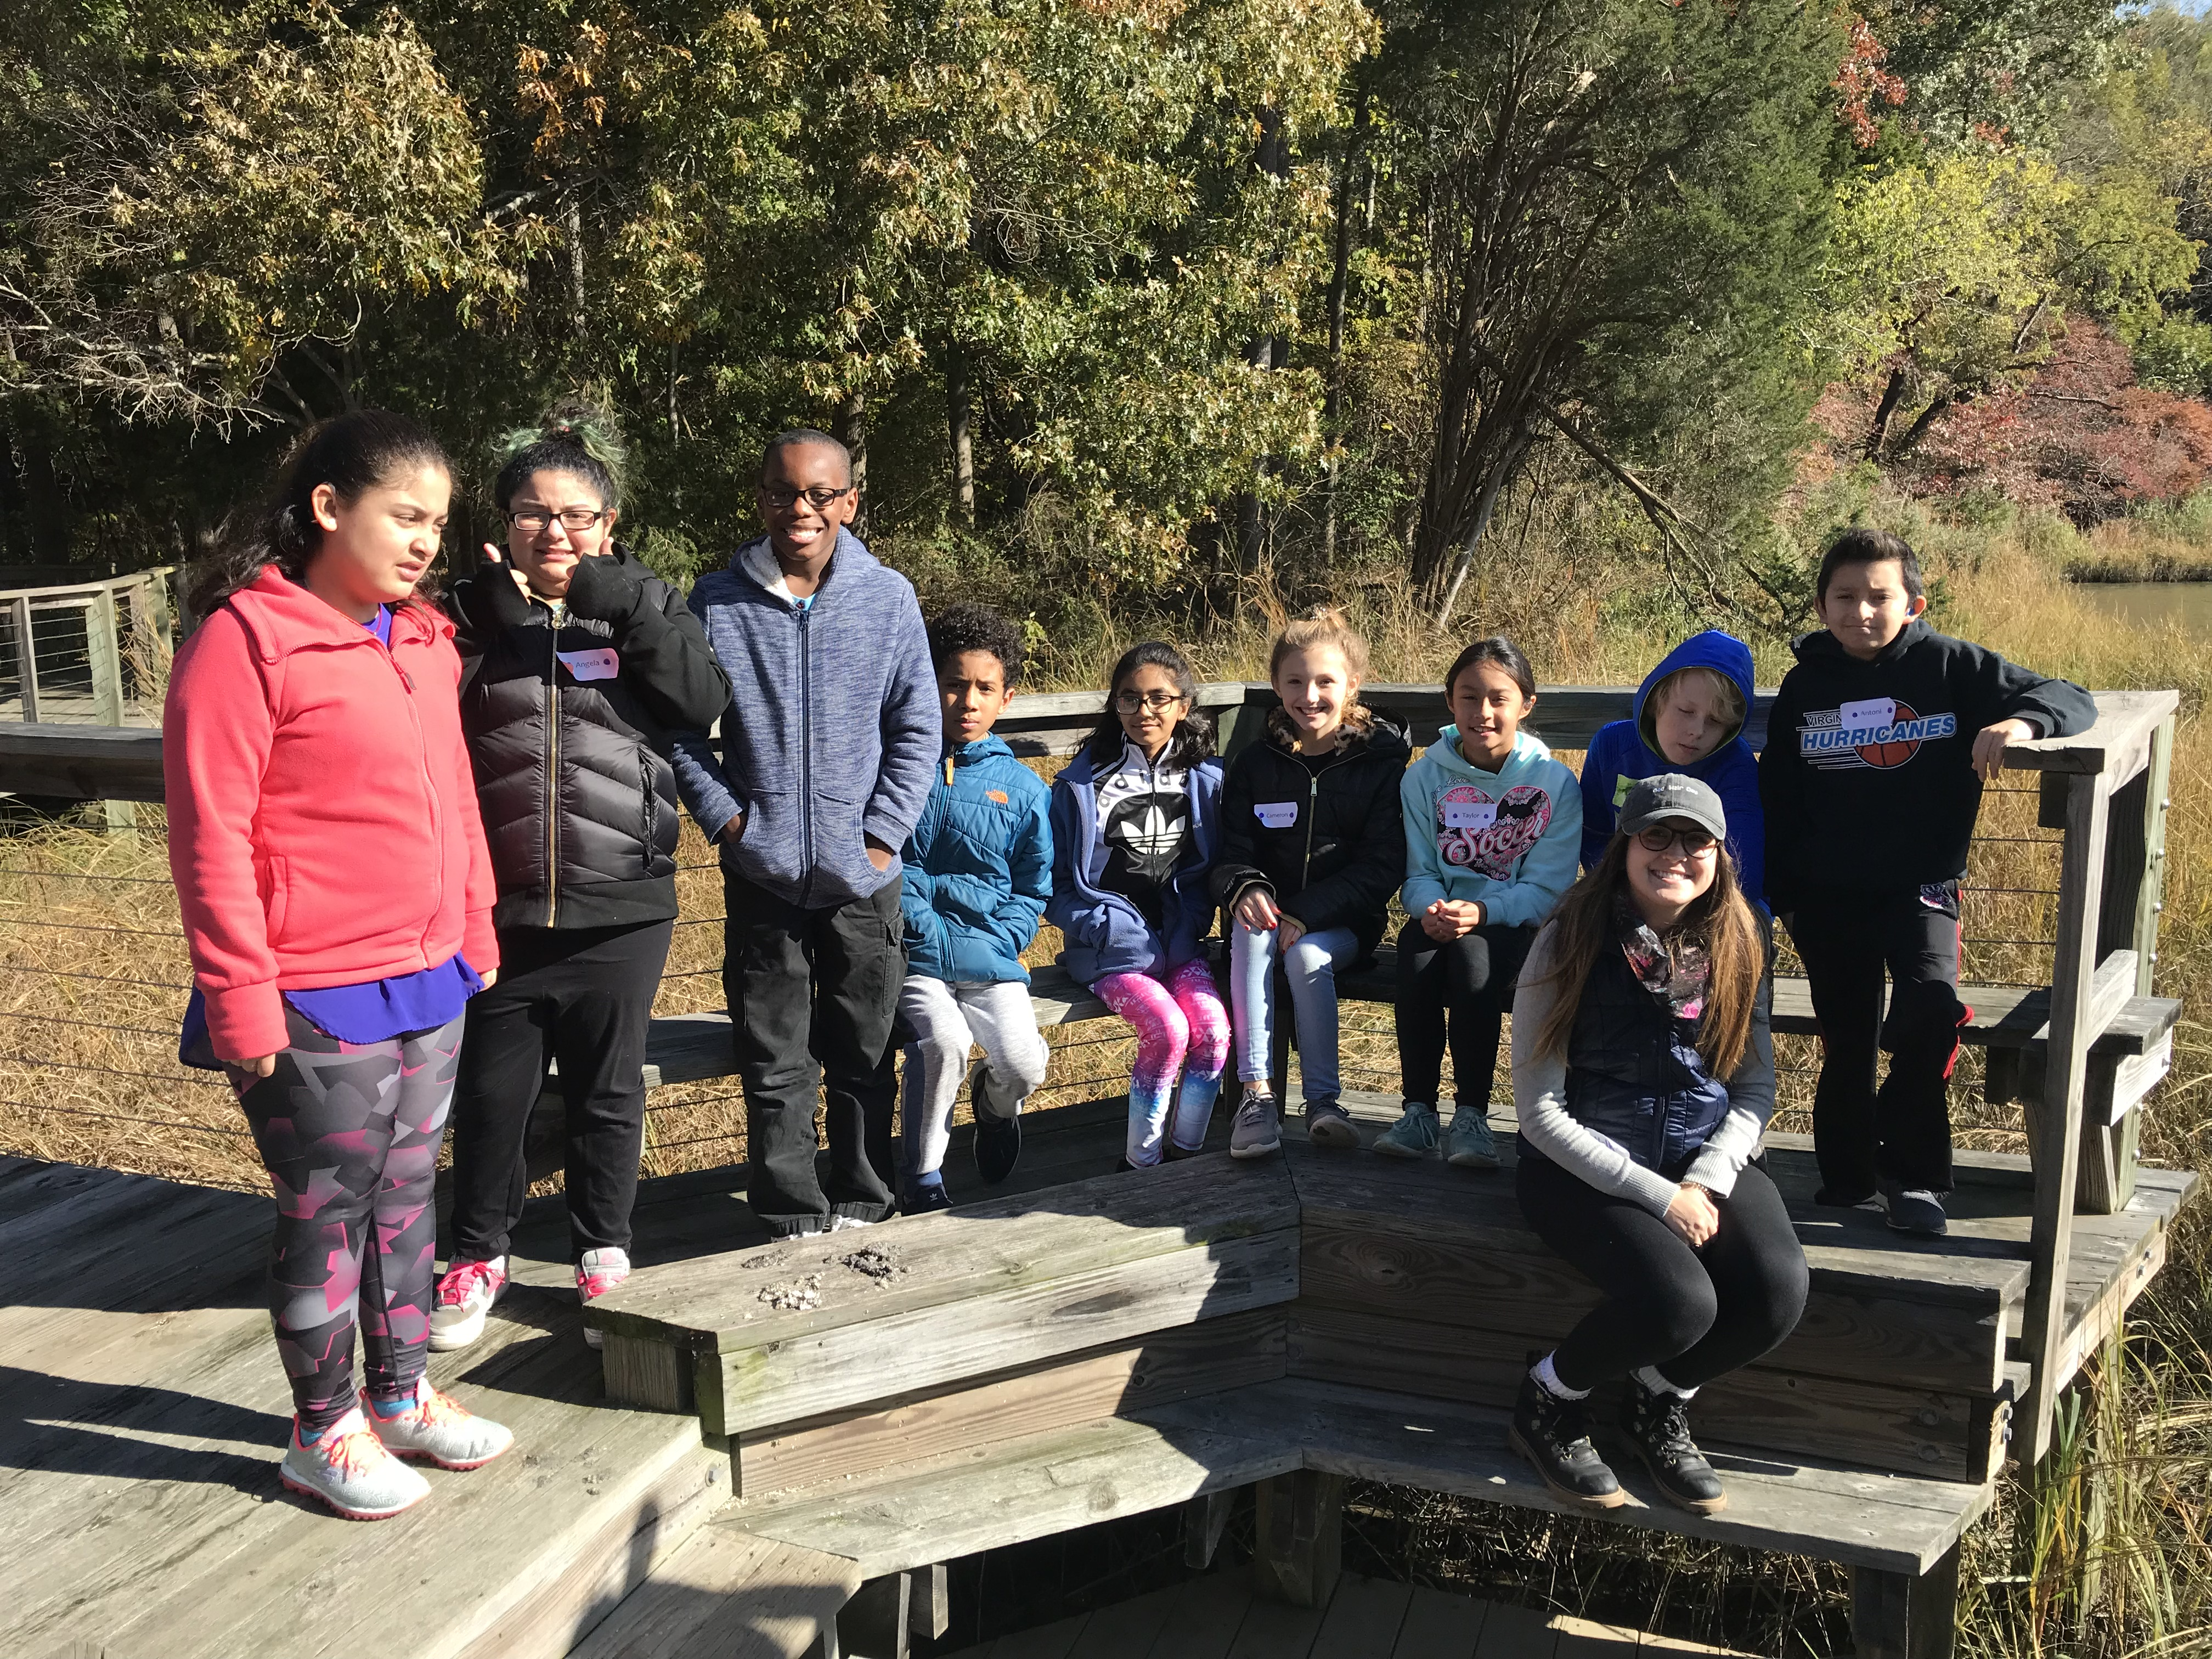 Students standing on dock of pond at the outdoor lab